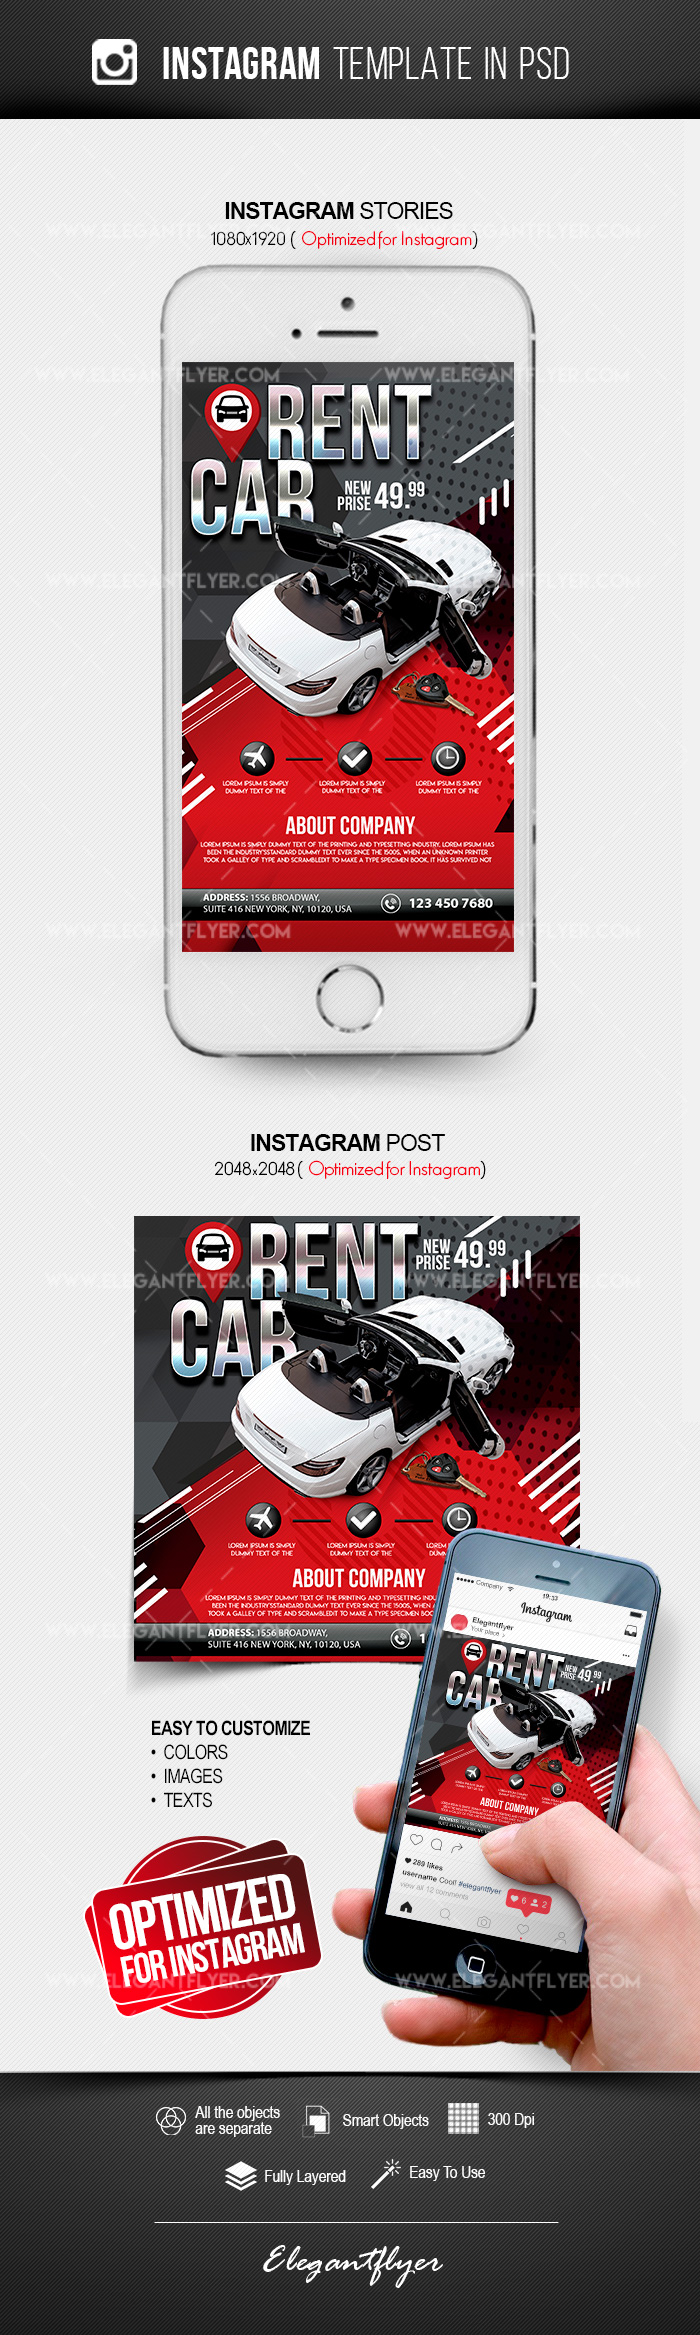 Rent a Car Flyer – Instagram Stories Template in PSD + Post Templates